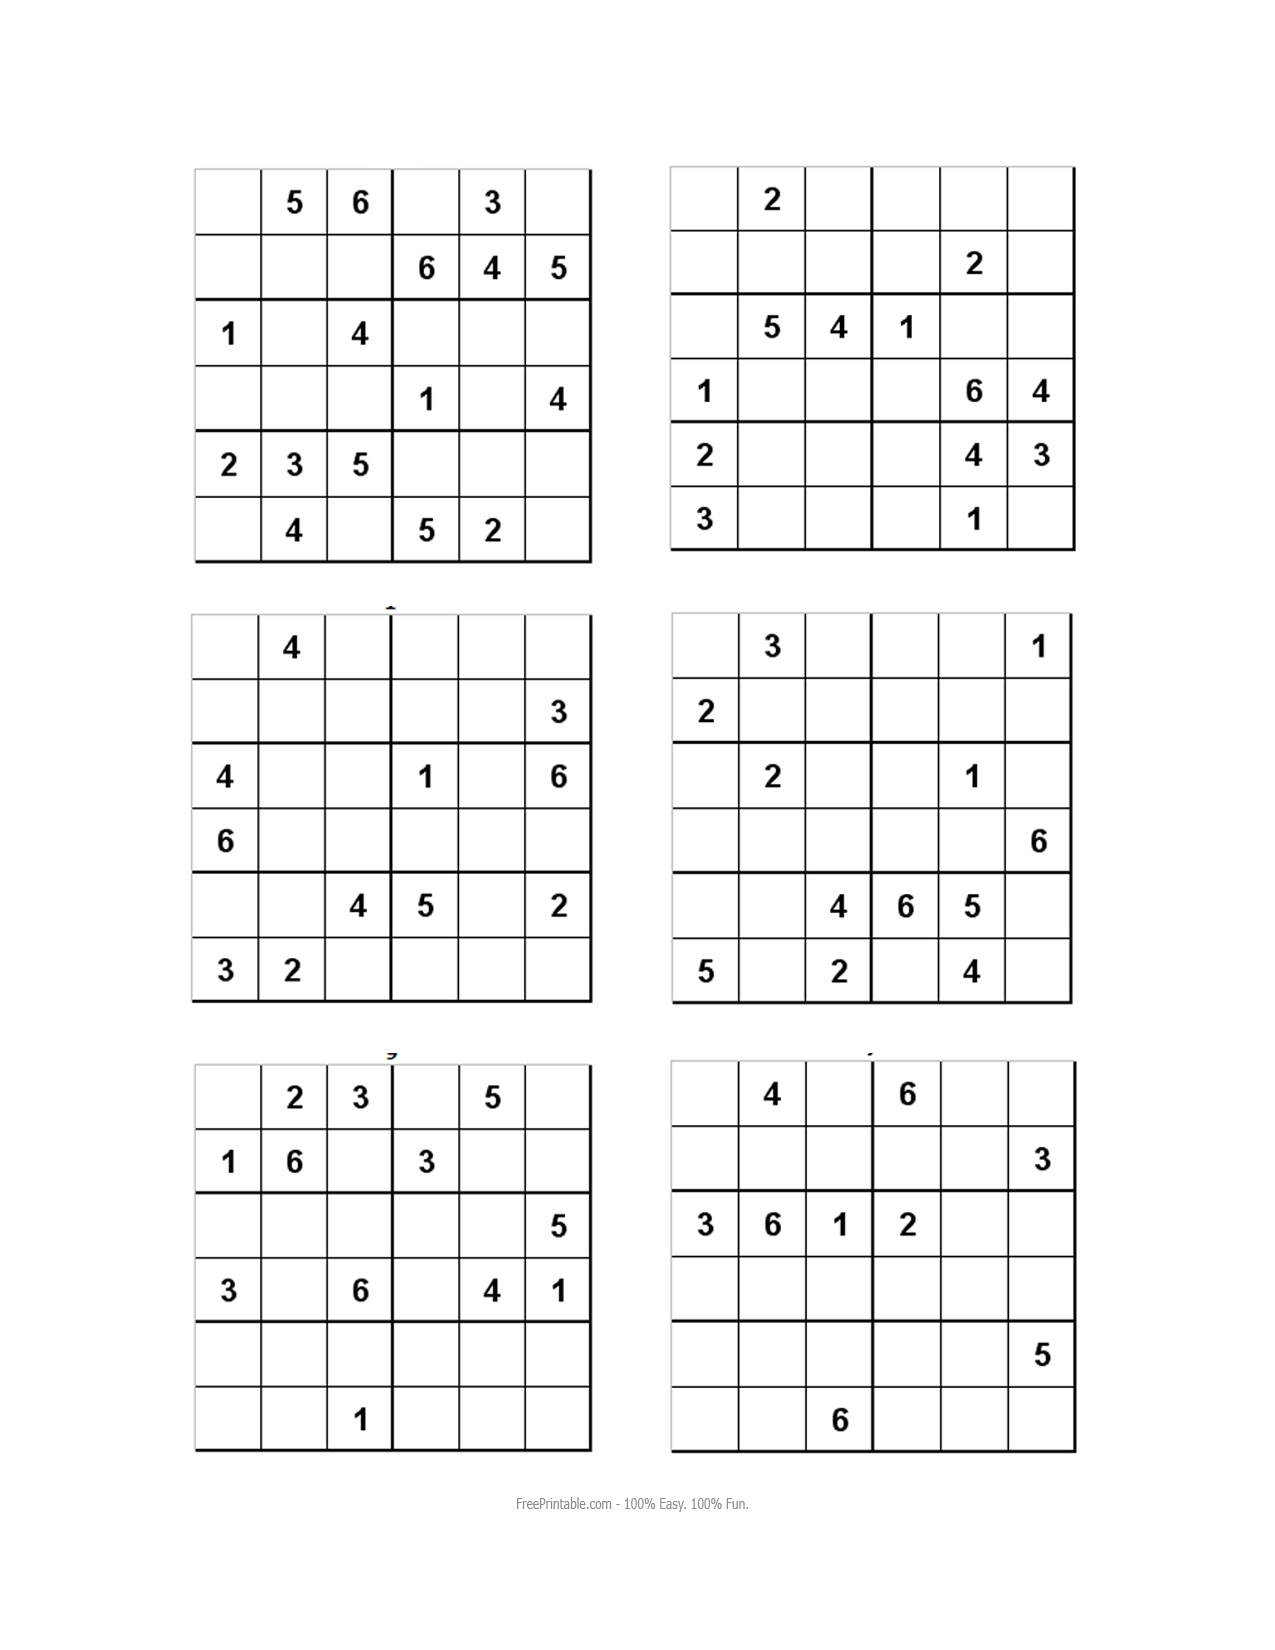 10 Best Photos Of Printable Sudoku For Kids 6 - Easy 6X6 Sudoku - Sudoku Puzzles Printable 6X6